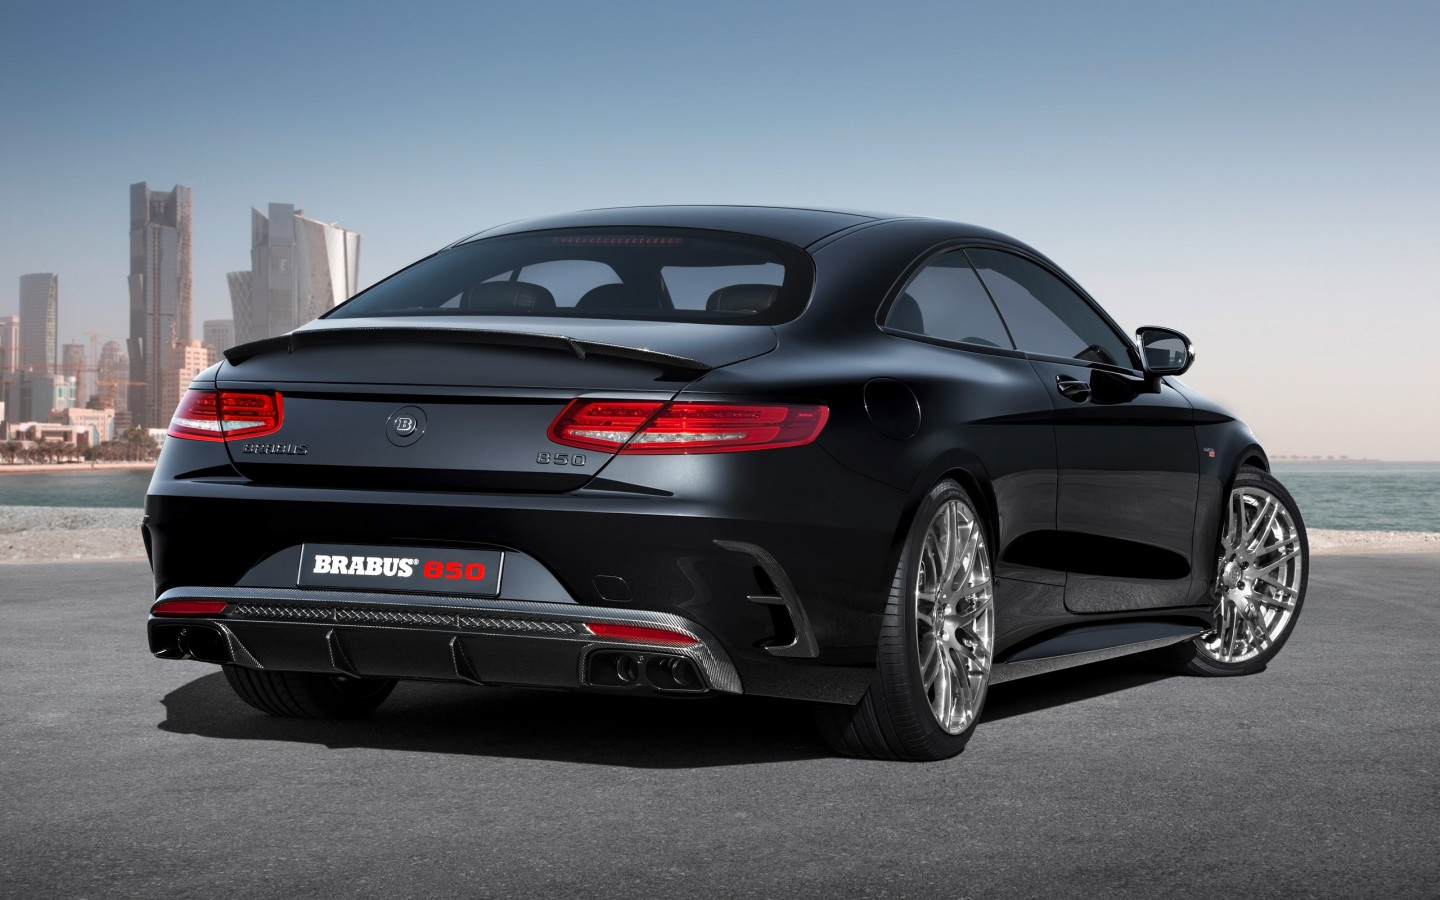 2015 brabus mercedes benz s63 850 biturbo coupe 2 for Mercedes benz 850